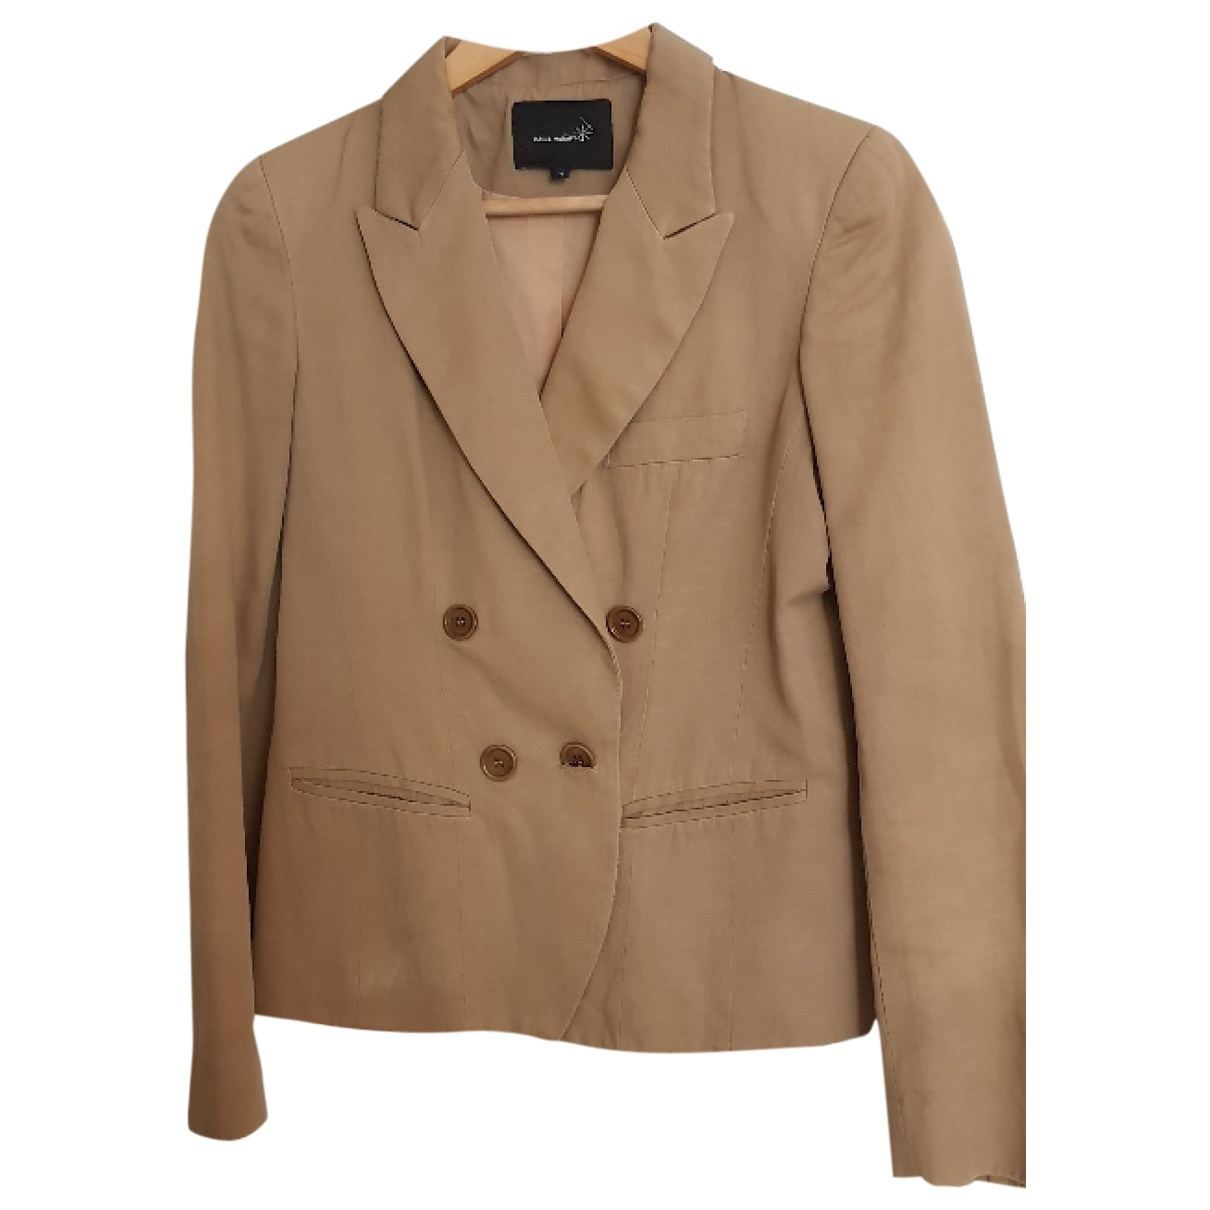 Isabel Marant \N Beige Cotton jacket for Women 1 0-5